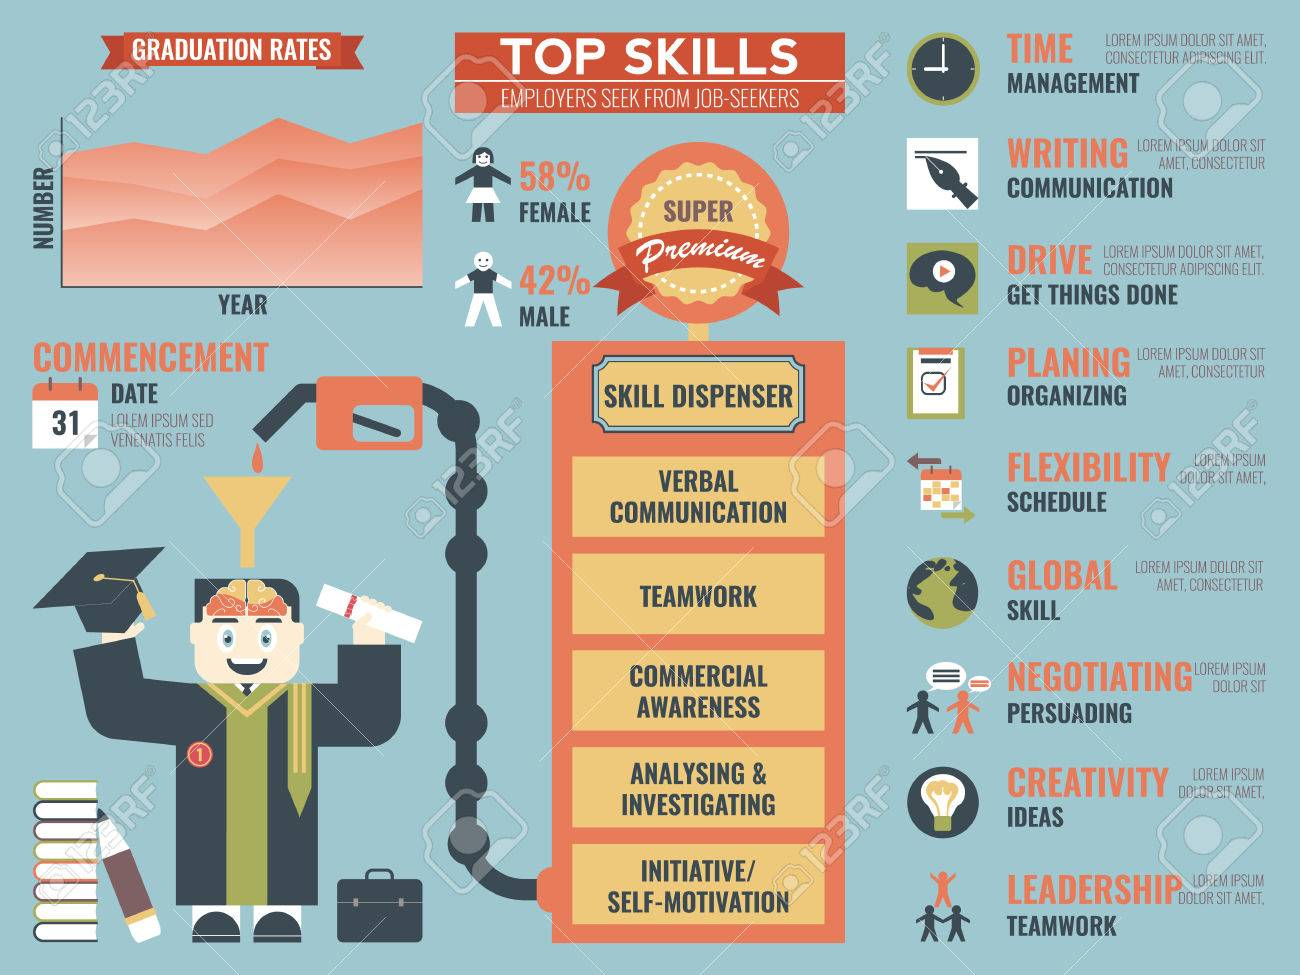 illustration of top skills that employers seek from job seekers illustration of top skills that employers seek from job seekers concept infographic elements stock